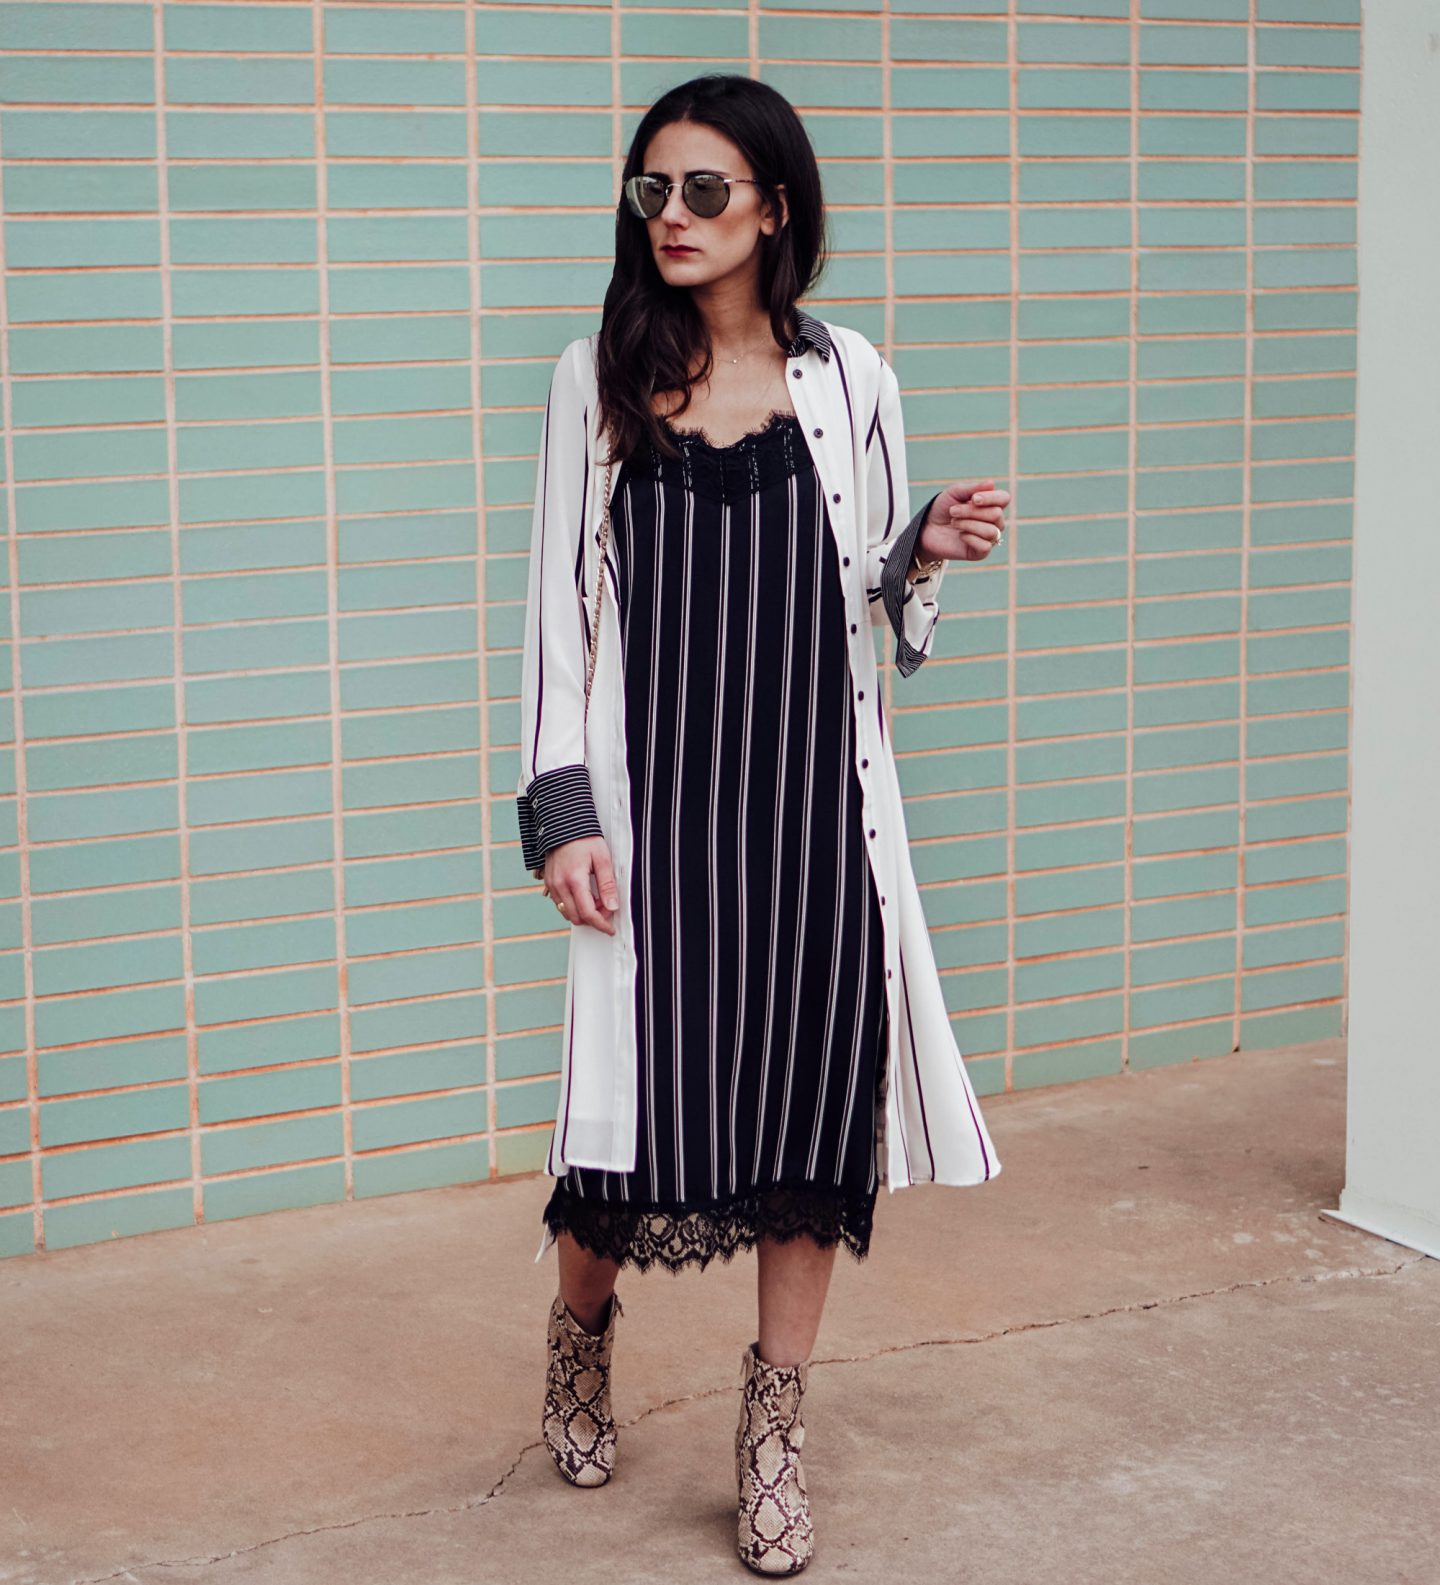 I'm sharing my favorite pieces from Who What Wear's Spring 2017 Collection for Target, including this striped lacey slip dress and cream shirtdress. Head over to TheDandyLiar.com to see the rest of my favorites from the collections.